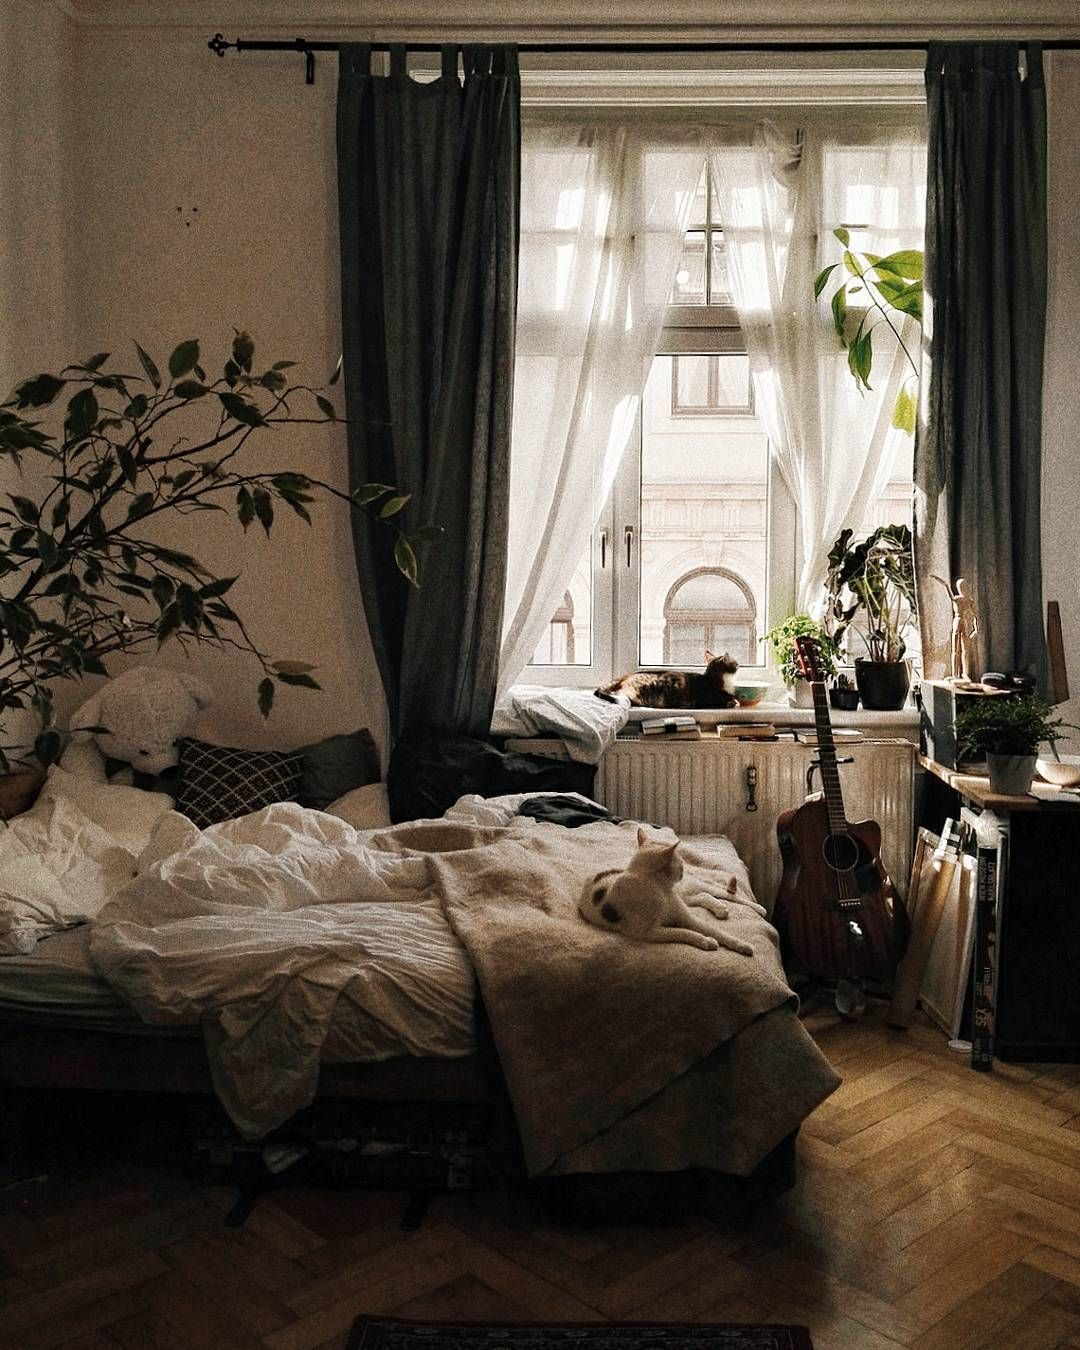 Photo of 18 cozy and beautiful beds that you want to crawl into immediately